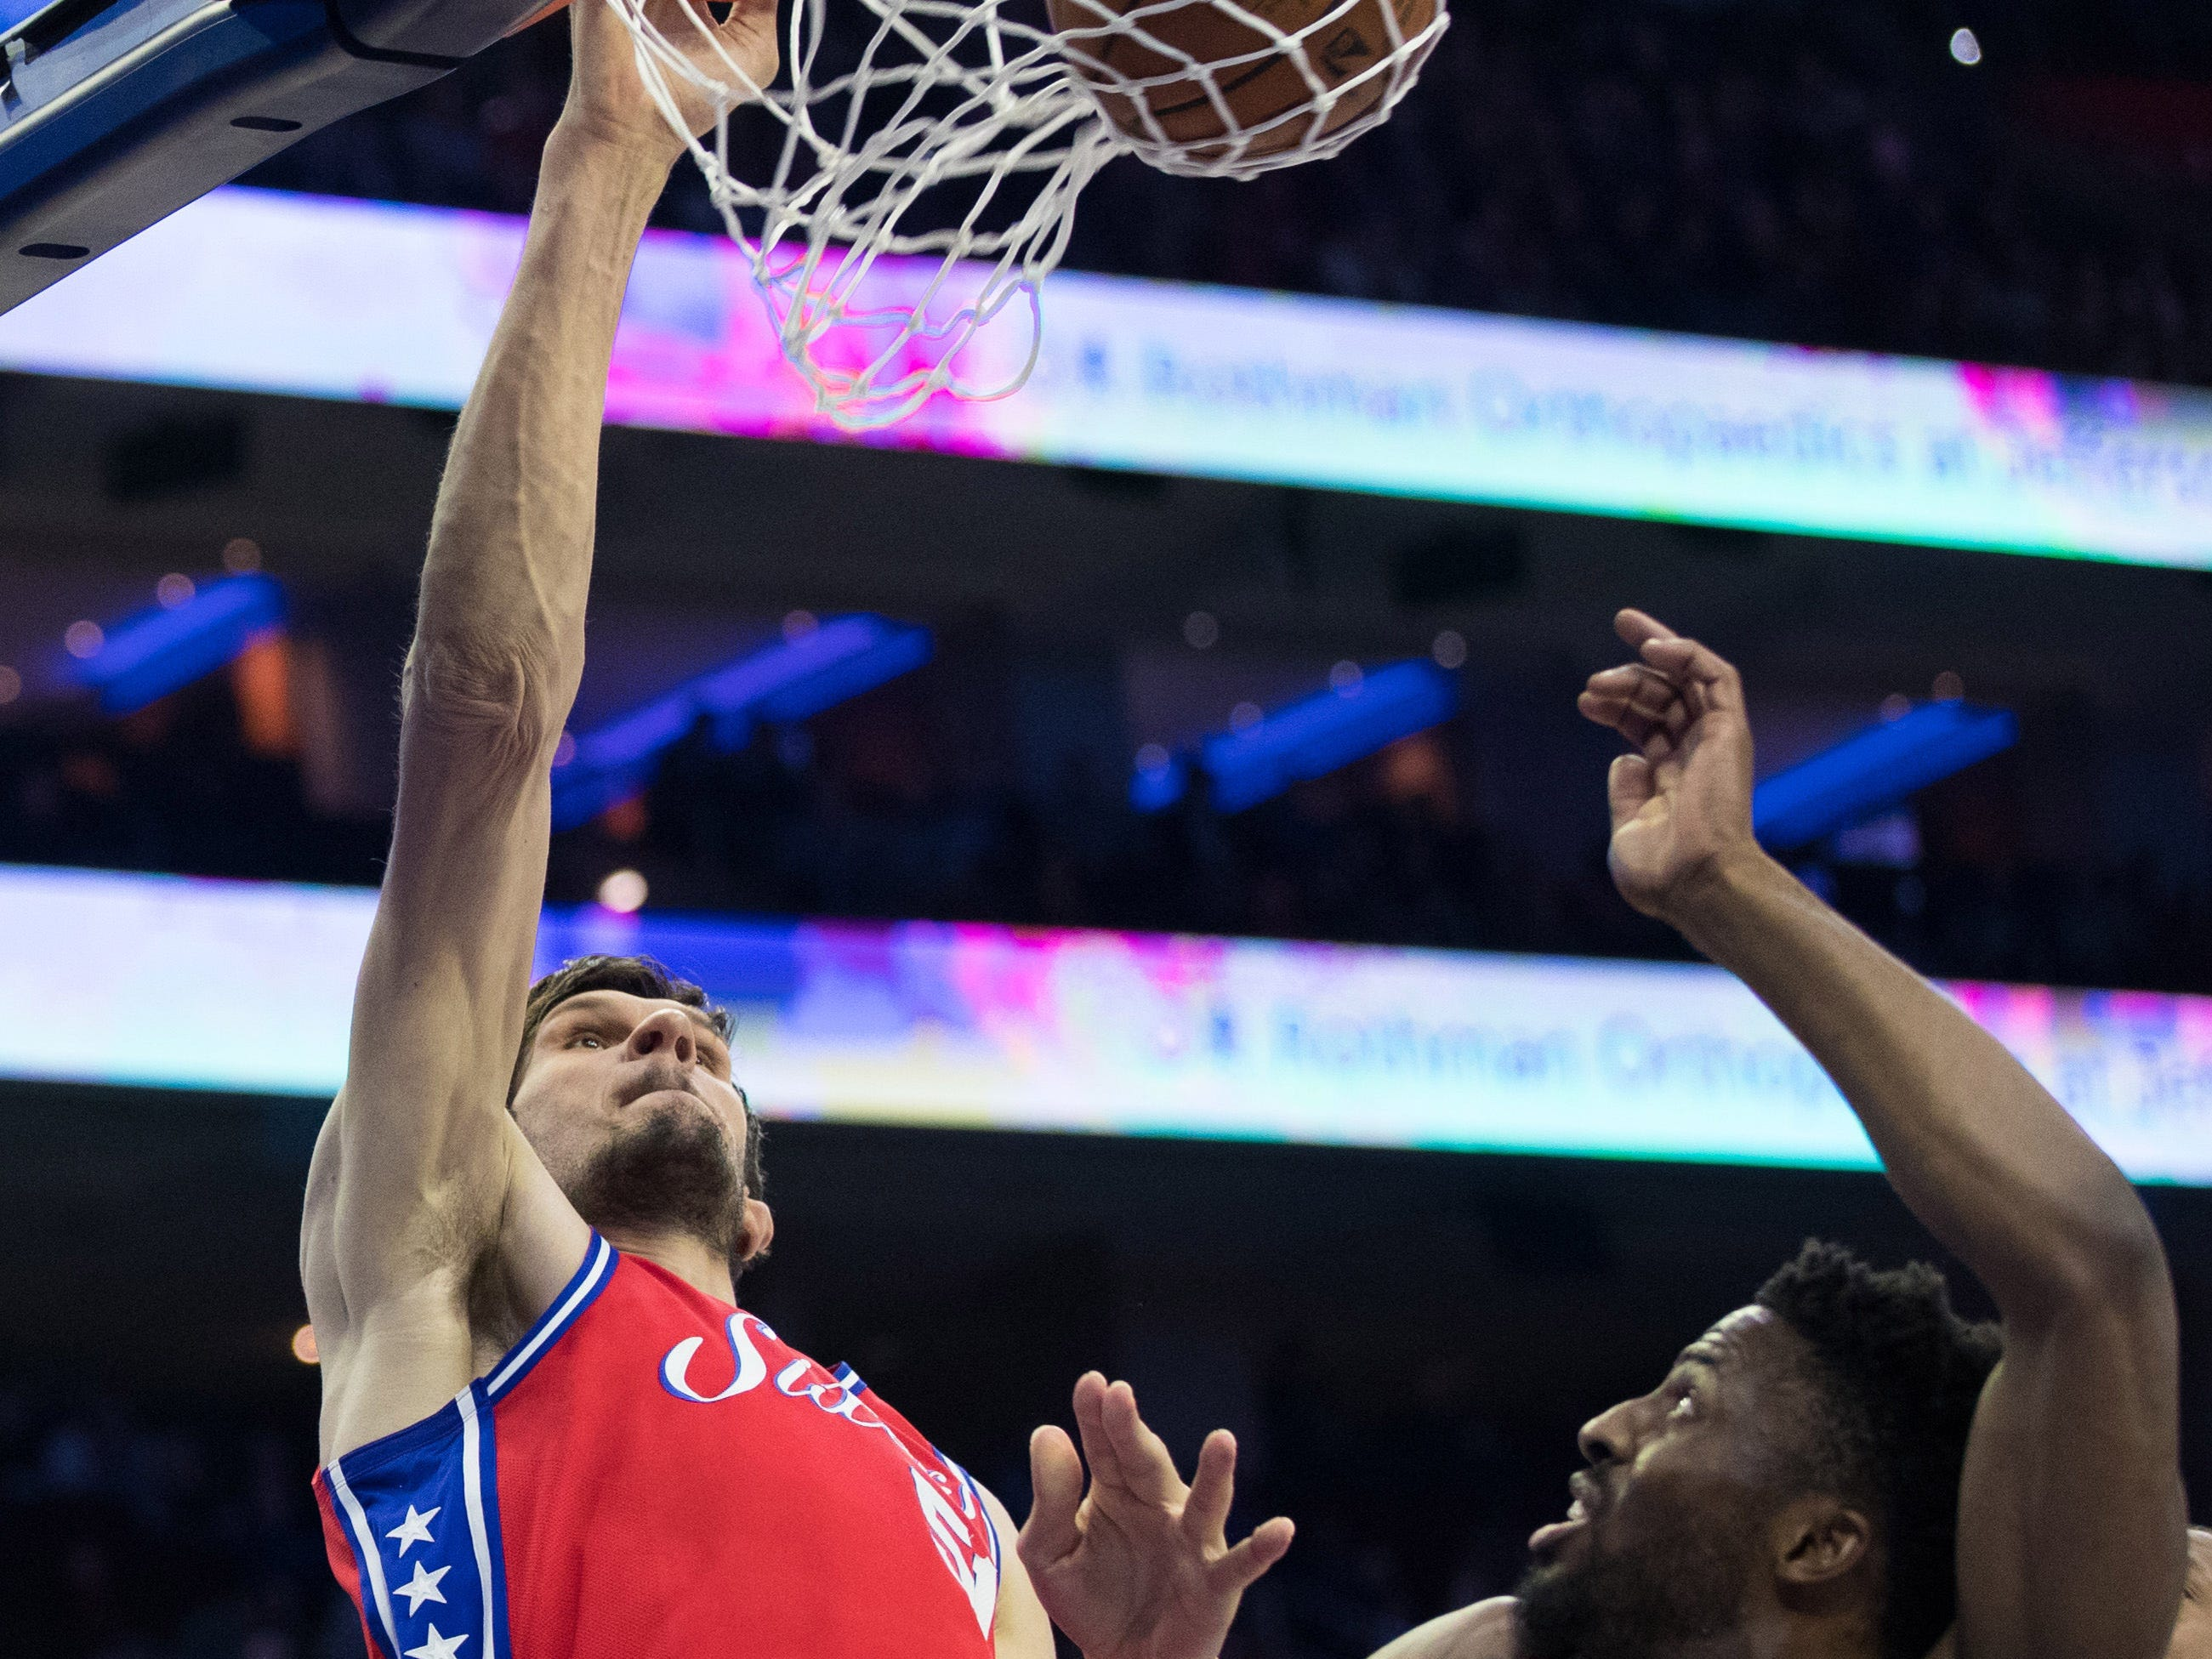 March 12:Philadelphia 76ers center Boban Marjanovic dunks the ball against the Cleveland Cavaliers during the first quarter at Wells Fargo Center.